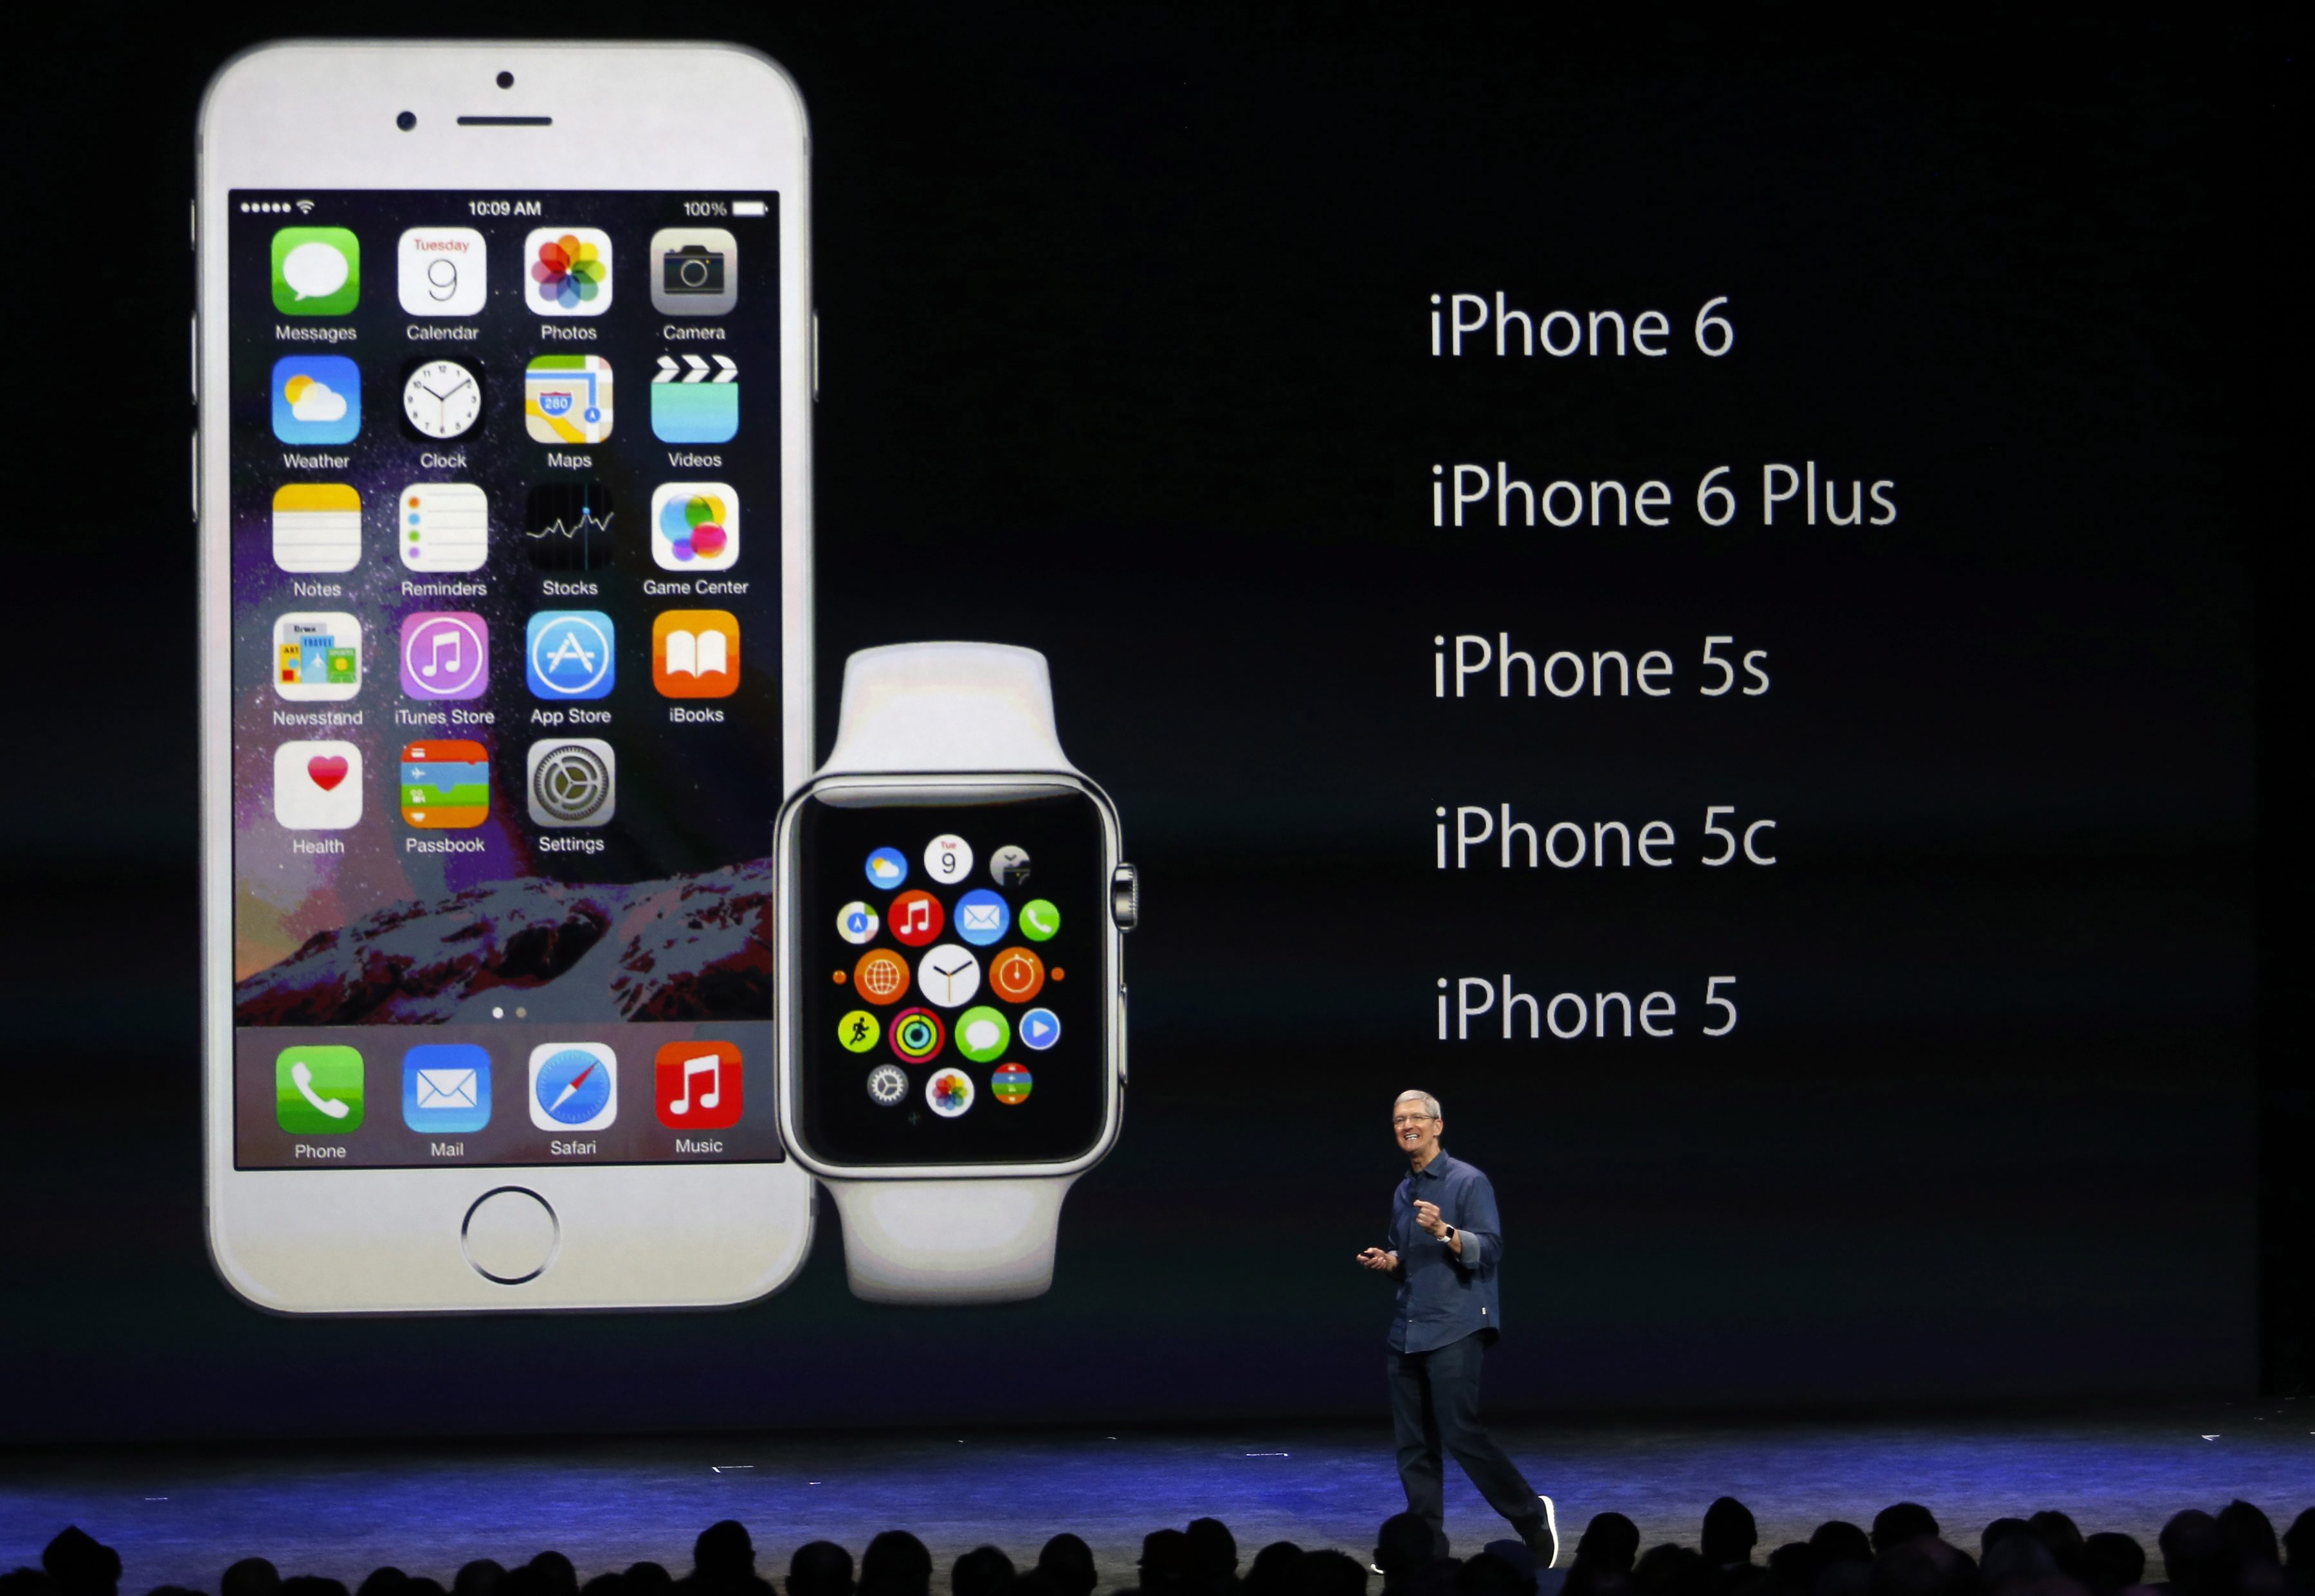 apple watch iphone hong kong recebe iphone 6 e 6 plus na pr 243 xima semana 6350